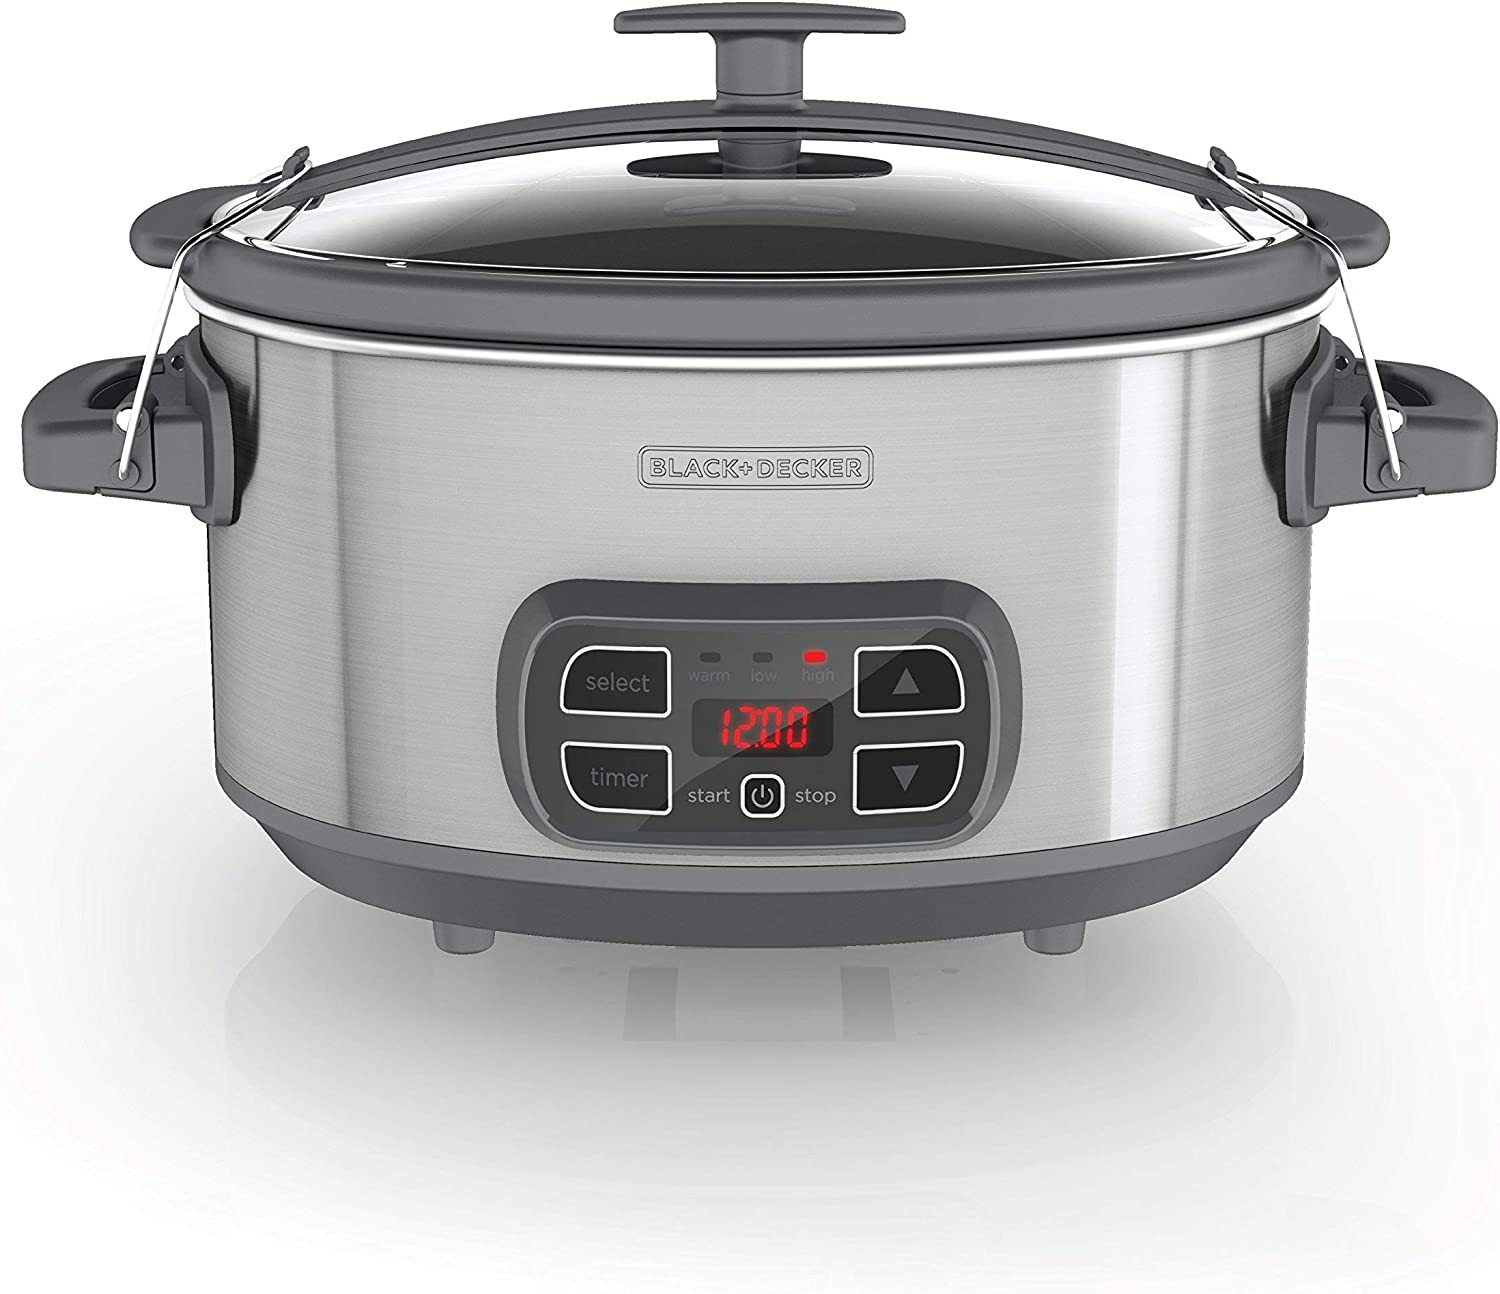 BLACK+DECKER SCD1007 7 Quart Programmable Slow Cooker with Digital Timer, Portable with Locking Lid, Stainless Steel (Renewed)